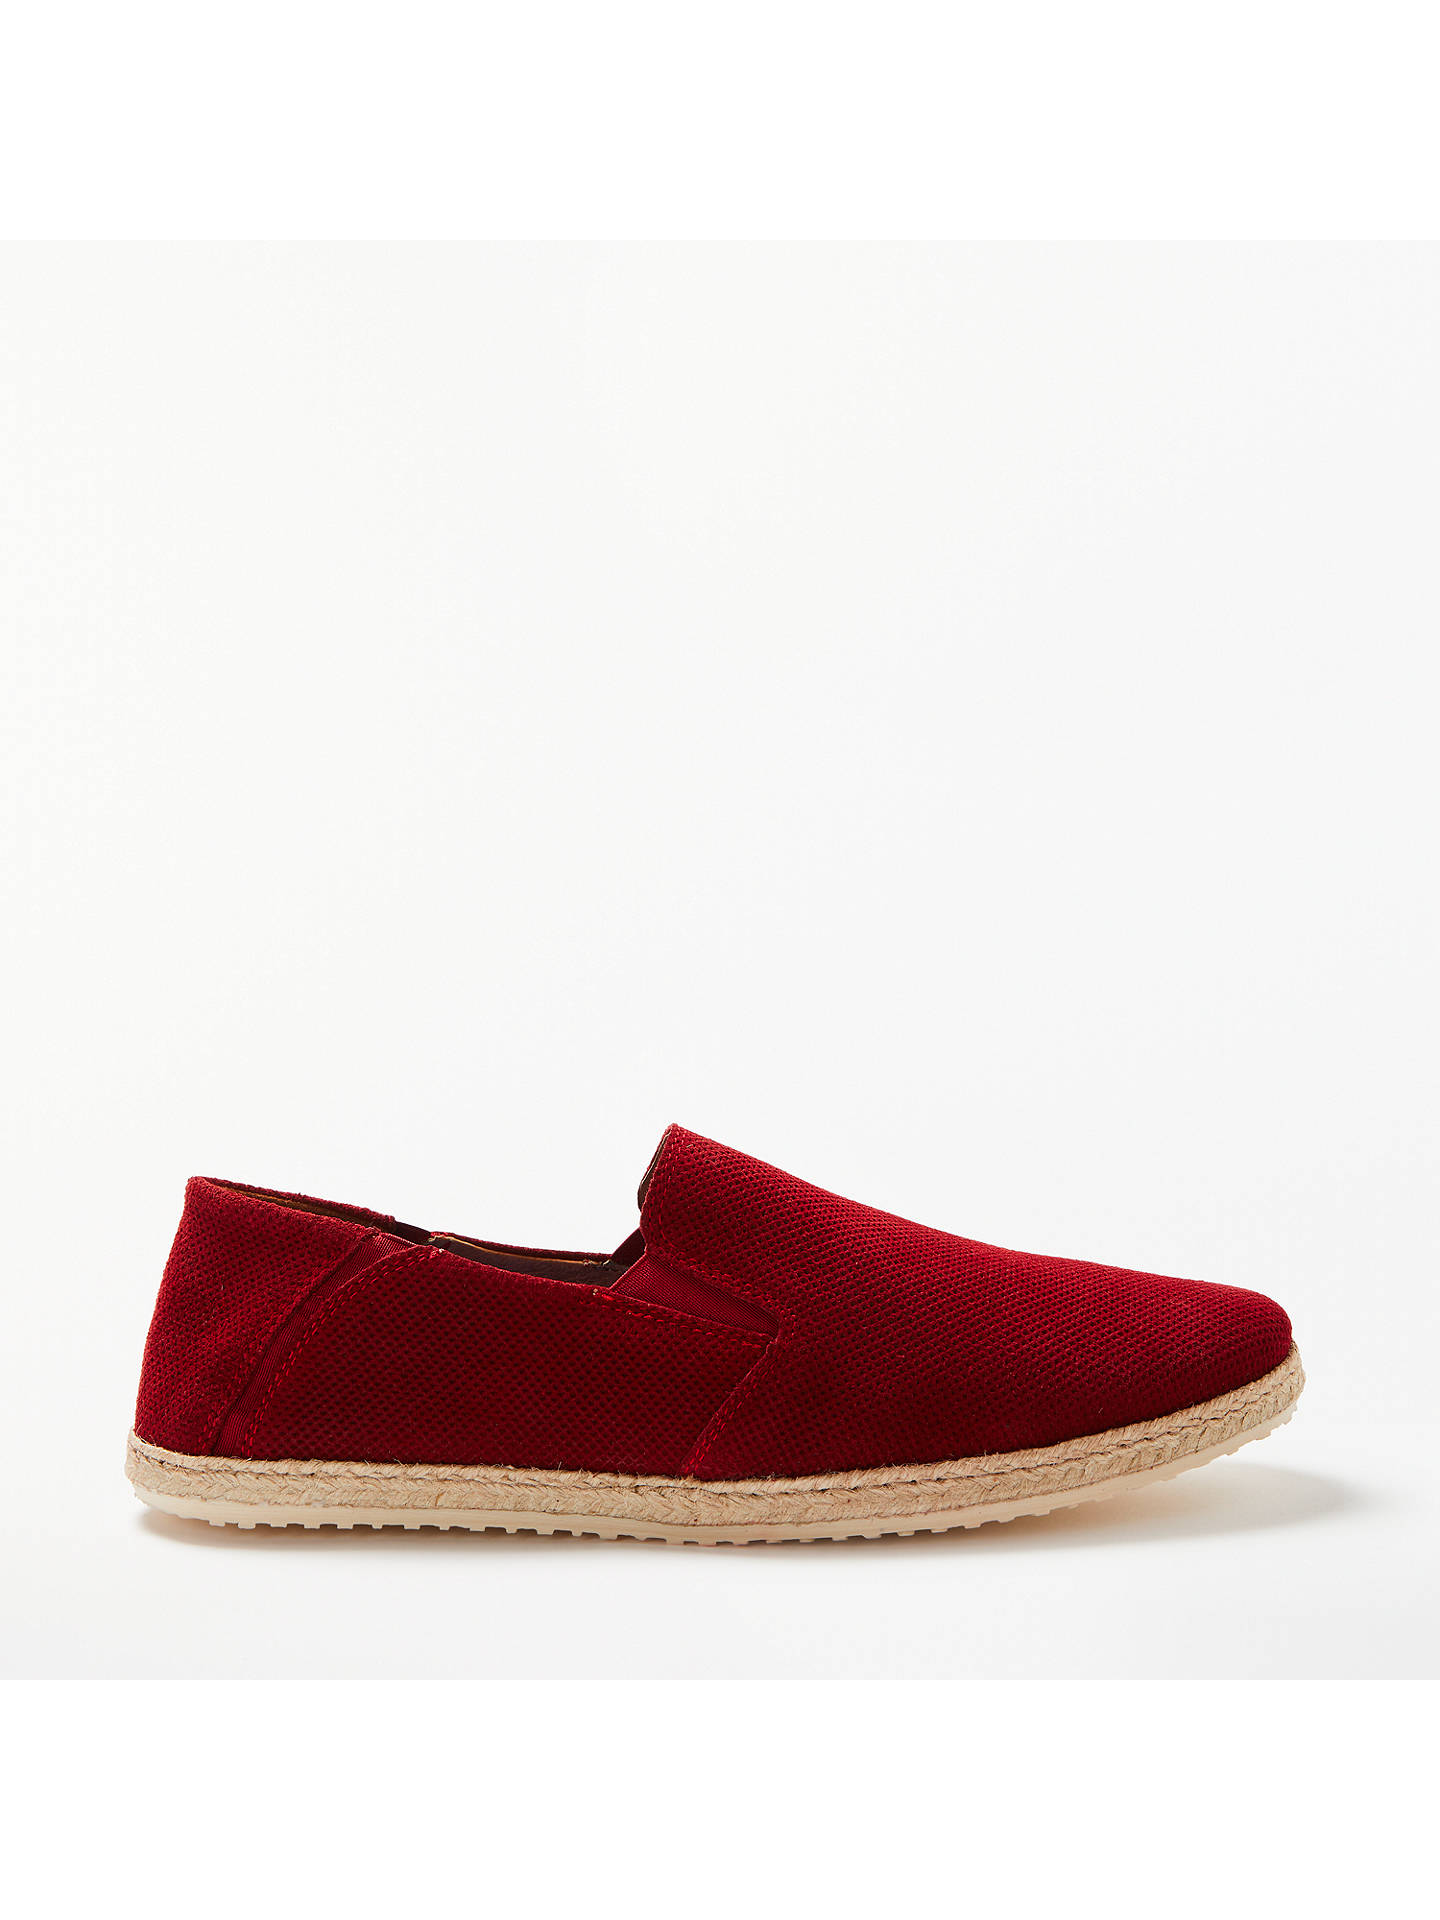 BuyJohn Lewis Suede Espadrilles, Red, 7 Online at johnlewis.com